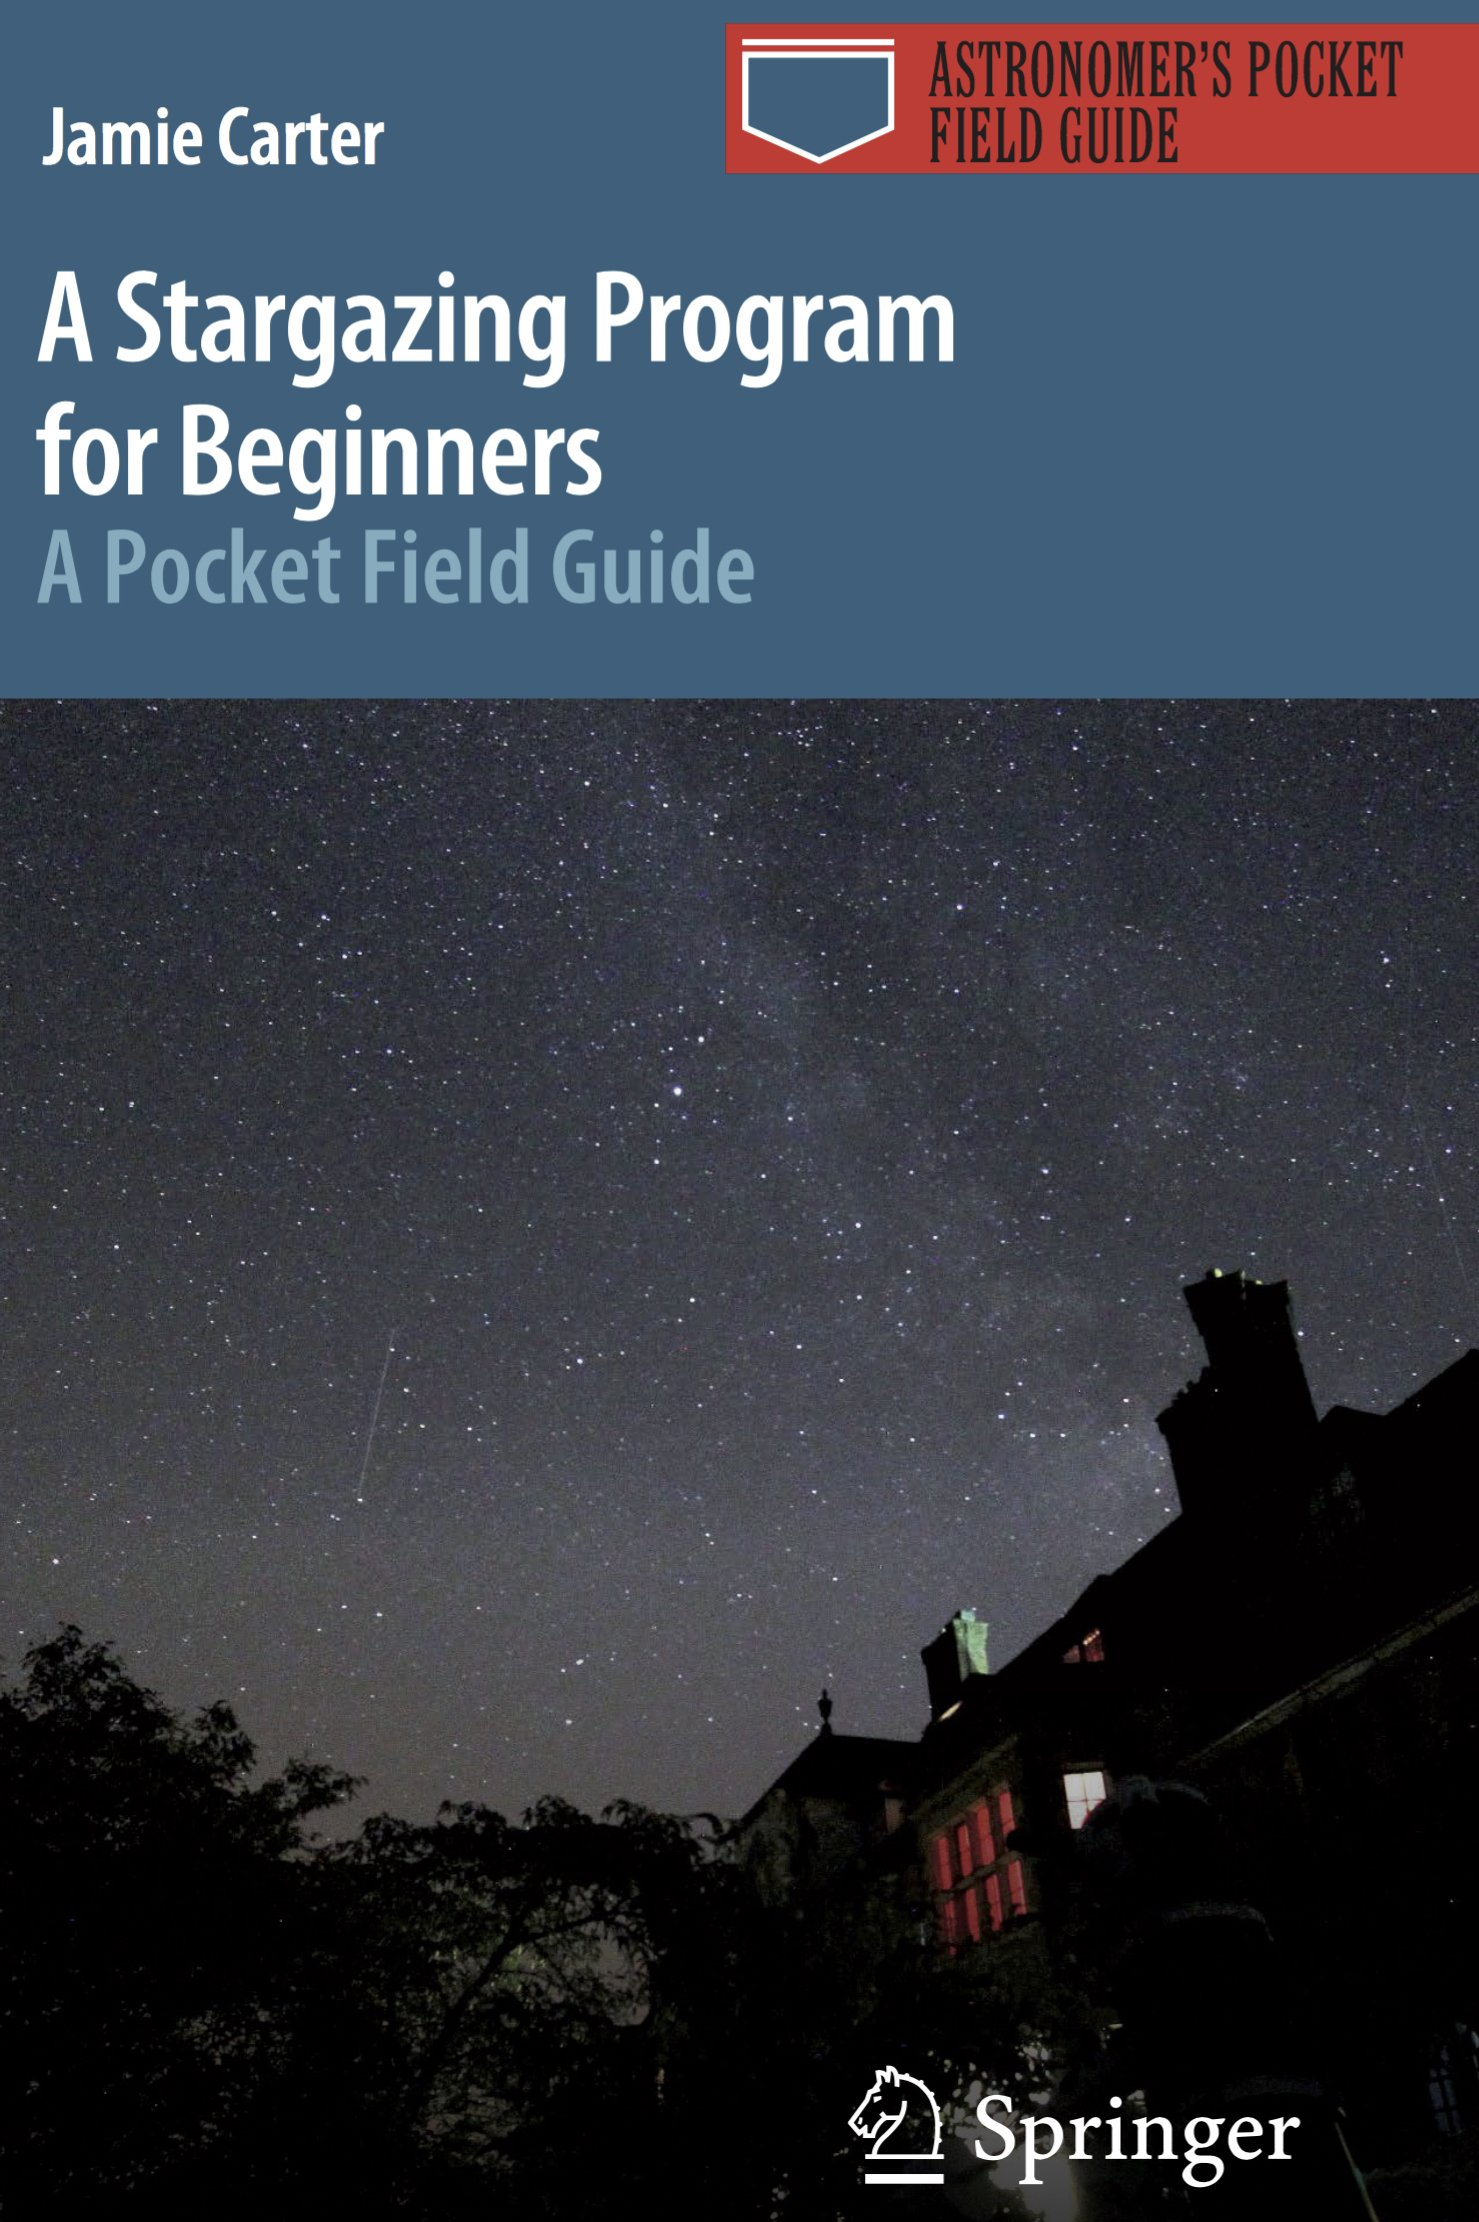 Stargazing Program for Beginners